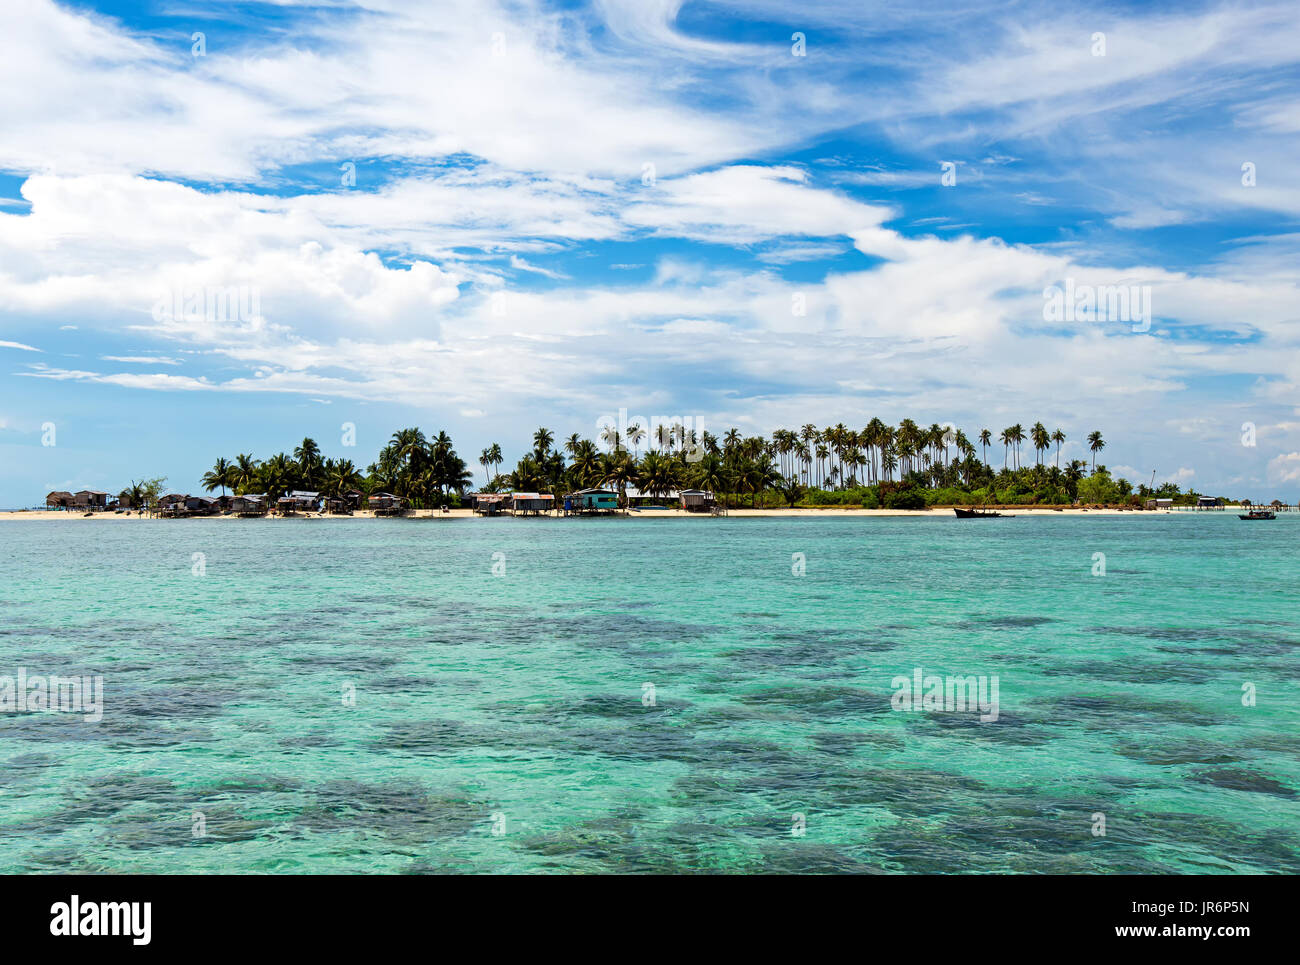 Beautiful clear and turquoise colored water near Maiga Island located in Semporna in the vicinity of Sipidan Island and Tun Sakaran Marine Park, Sabah - Stock Image